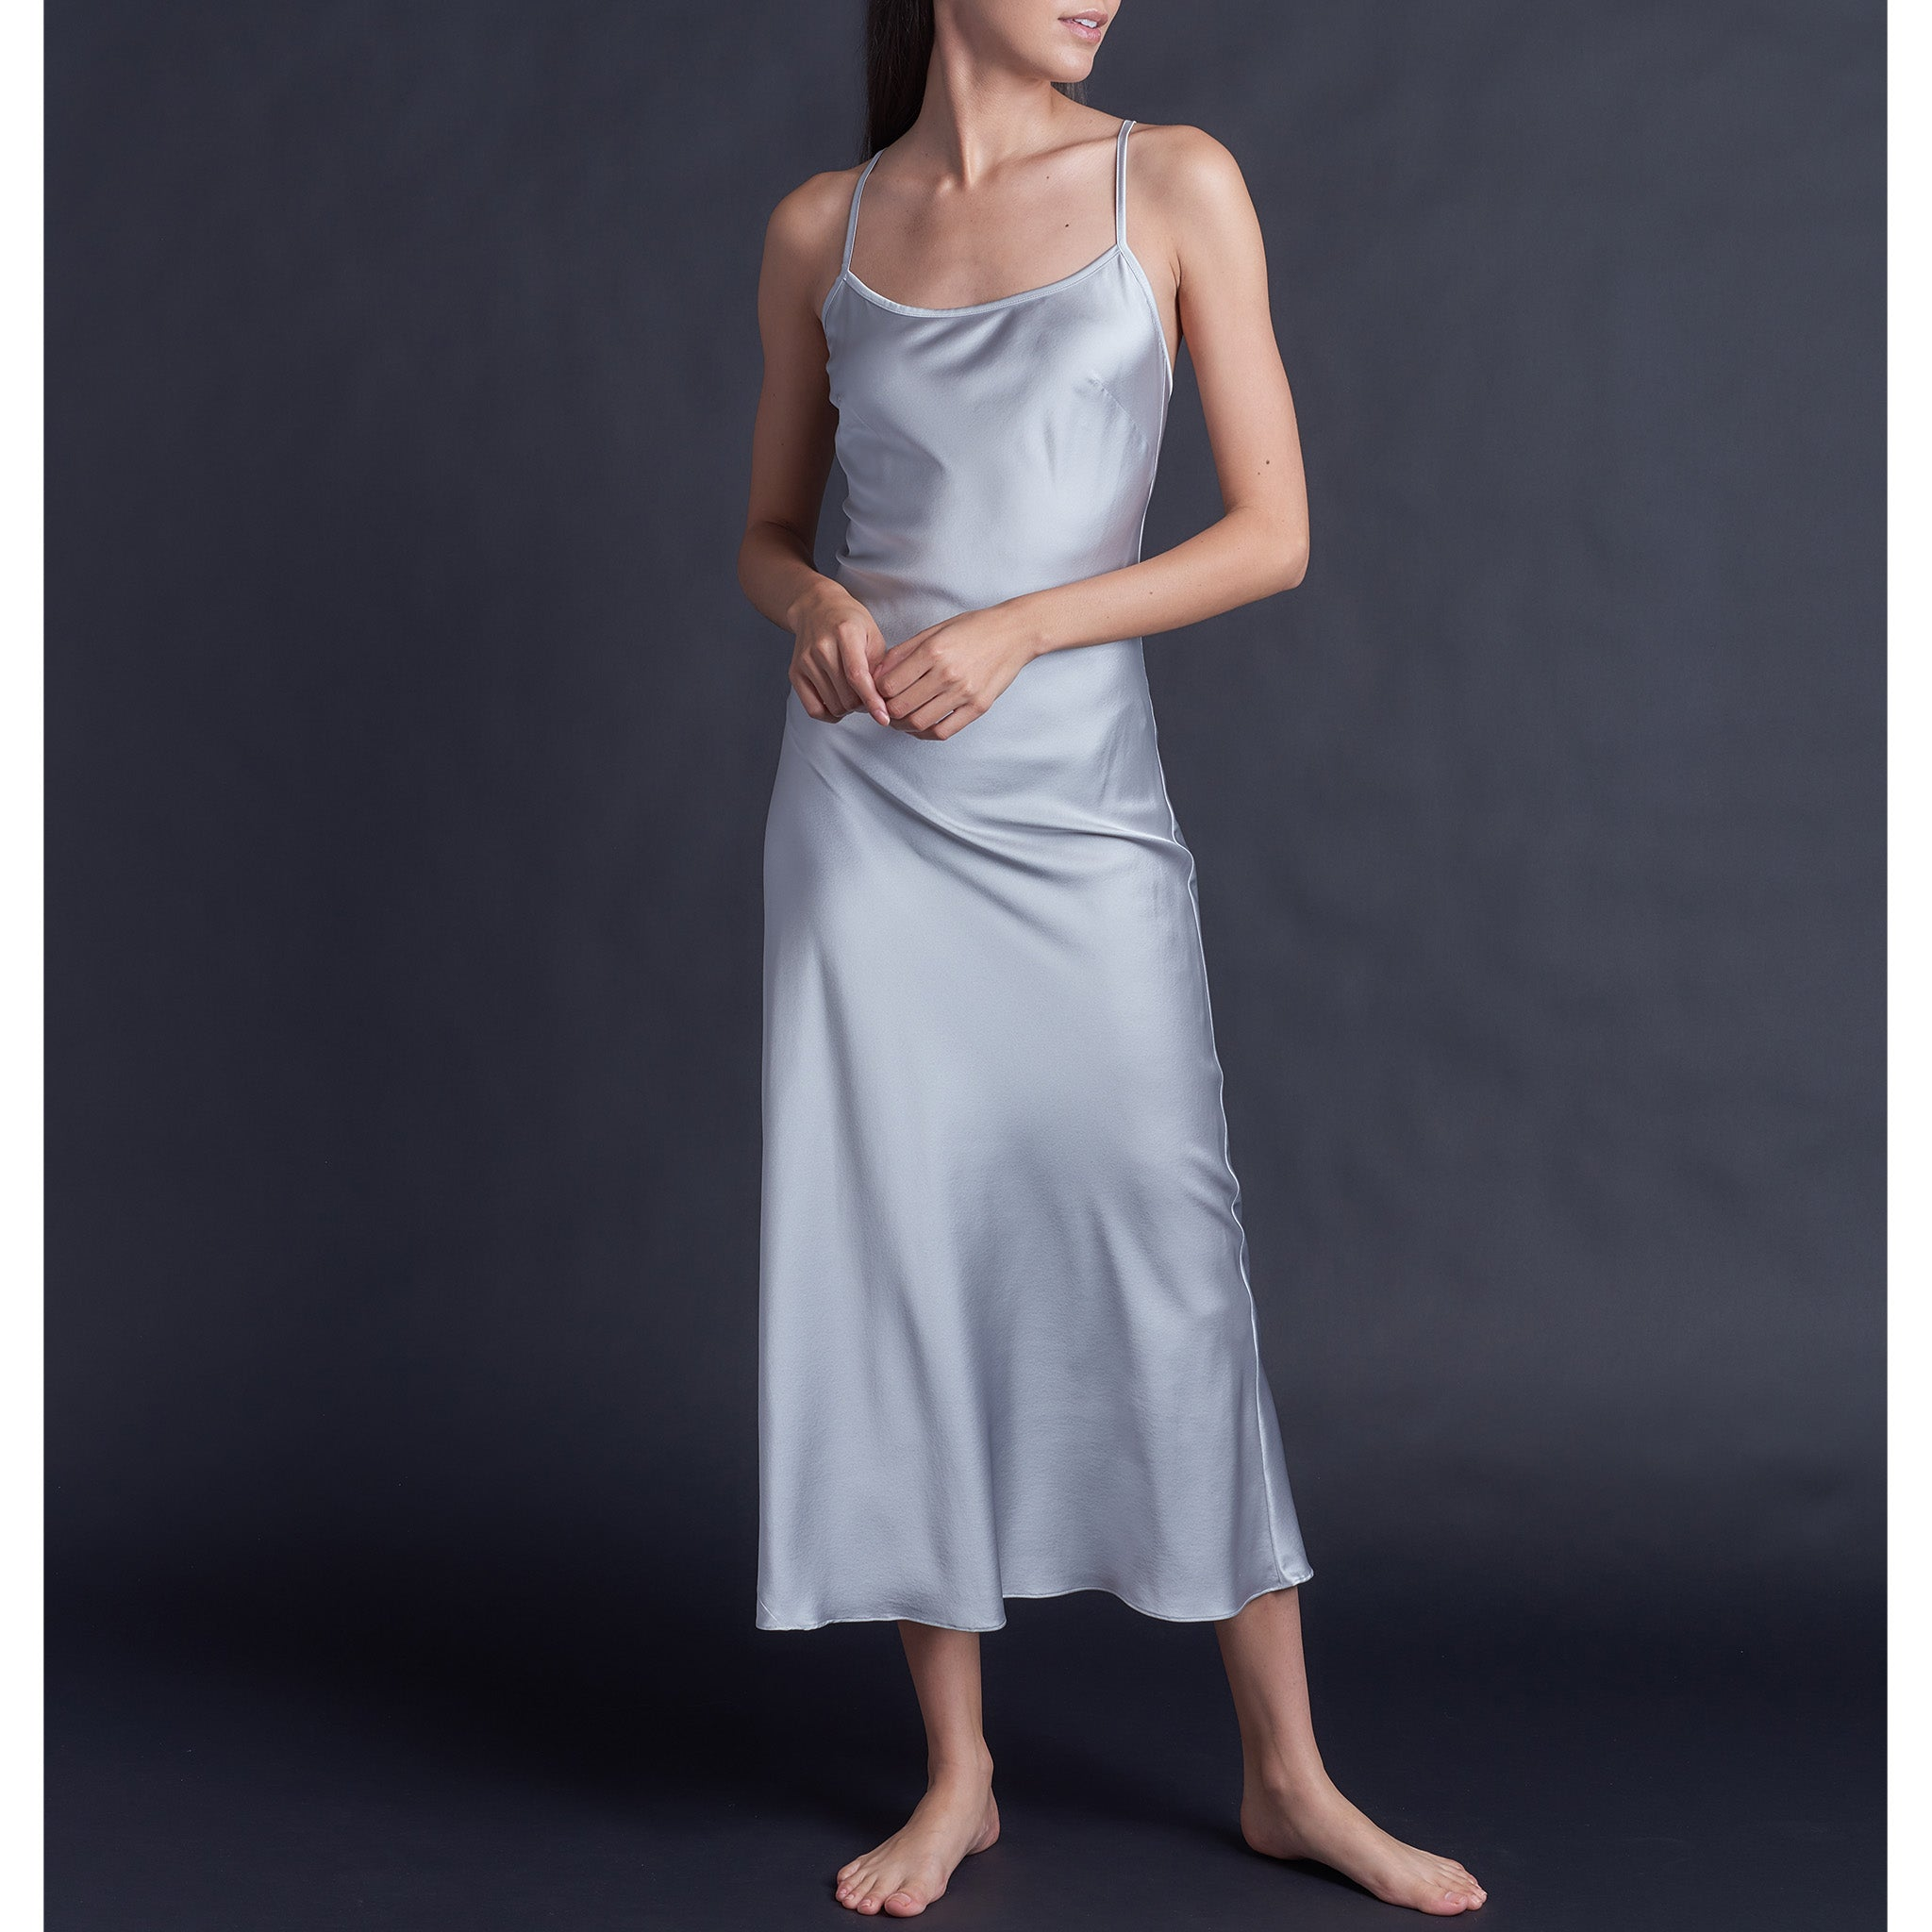 Juno Slip in Platinium Stretch Silk Charmeuse